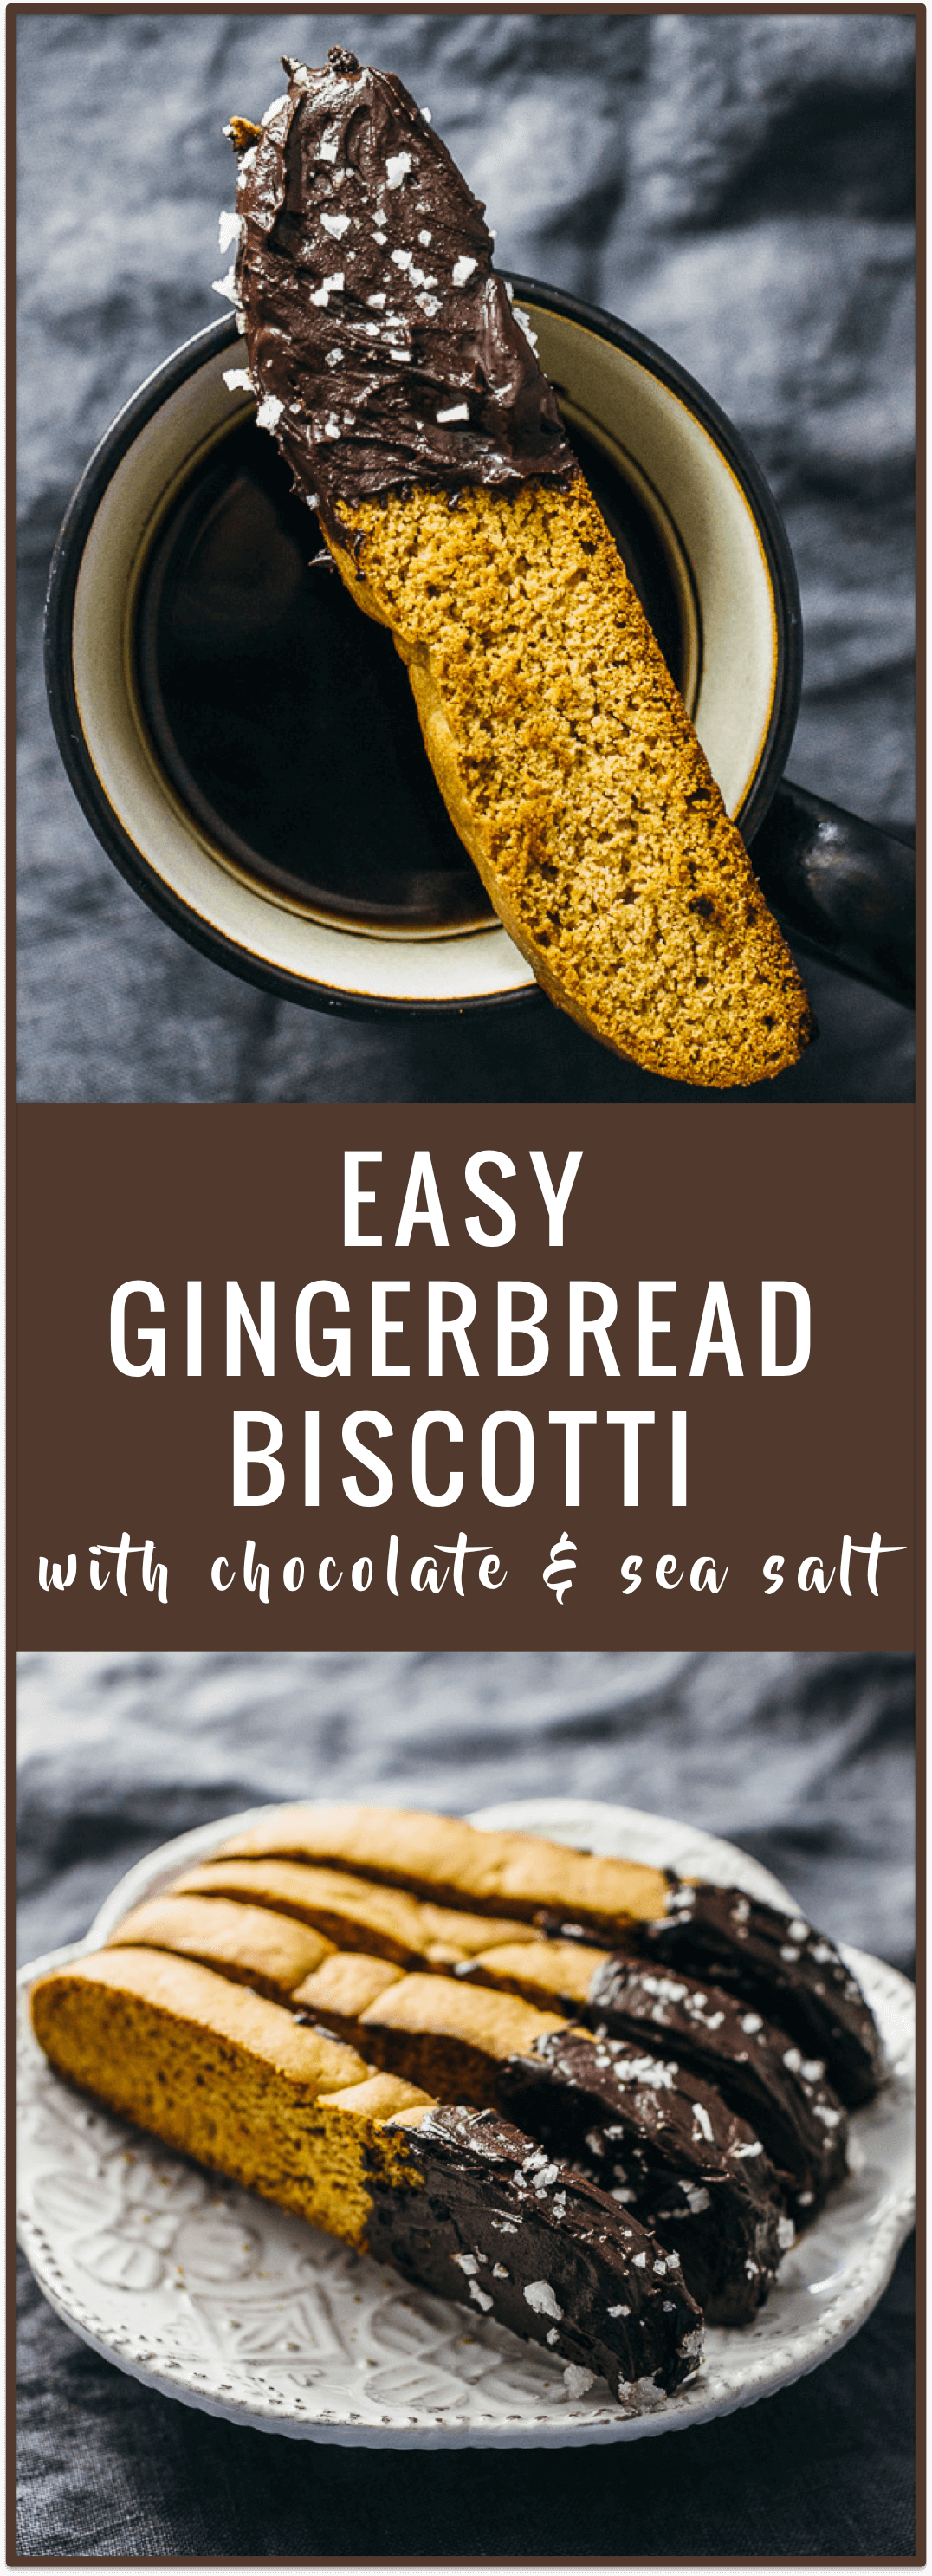 Gingerbread biscotti with chocolate and sea salt - This is an easy ...